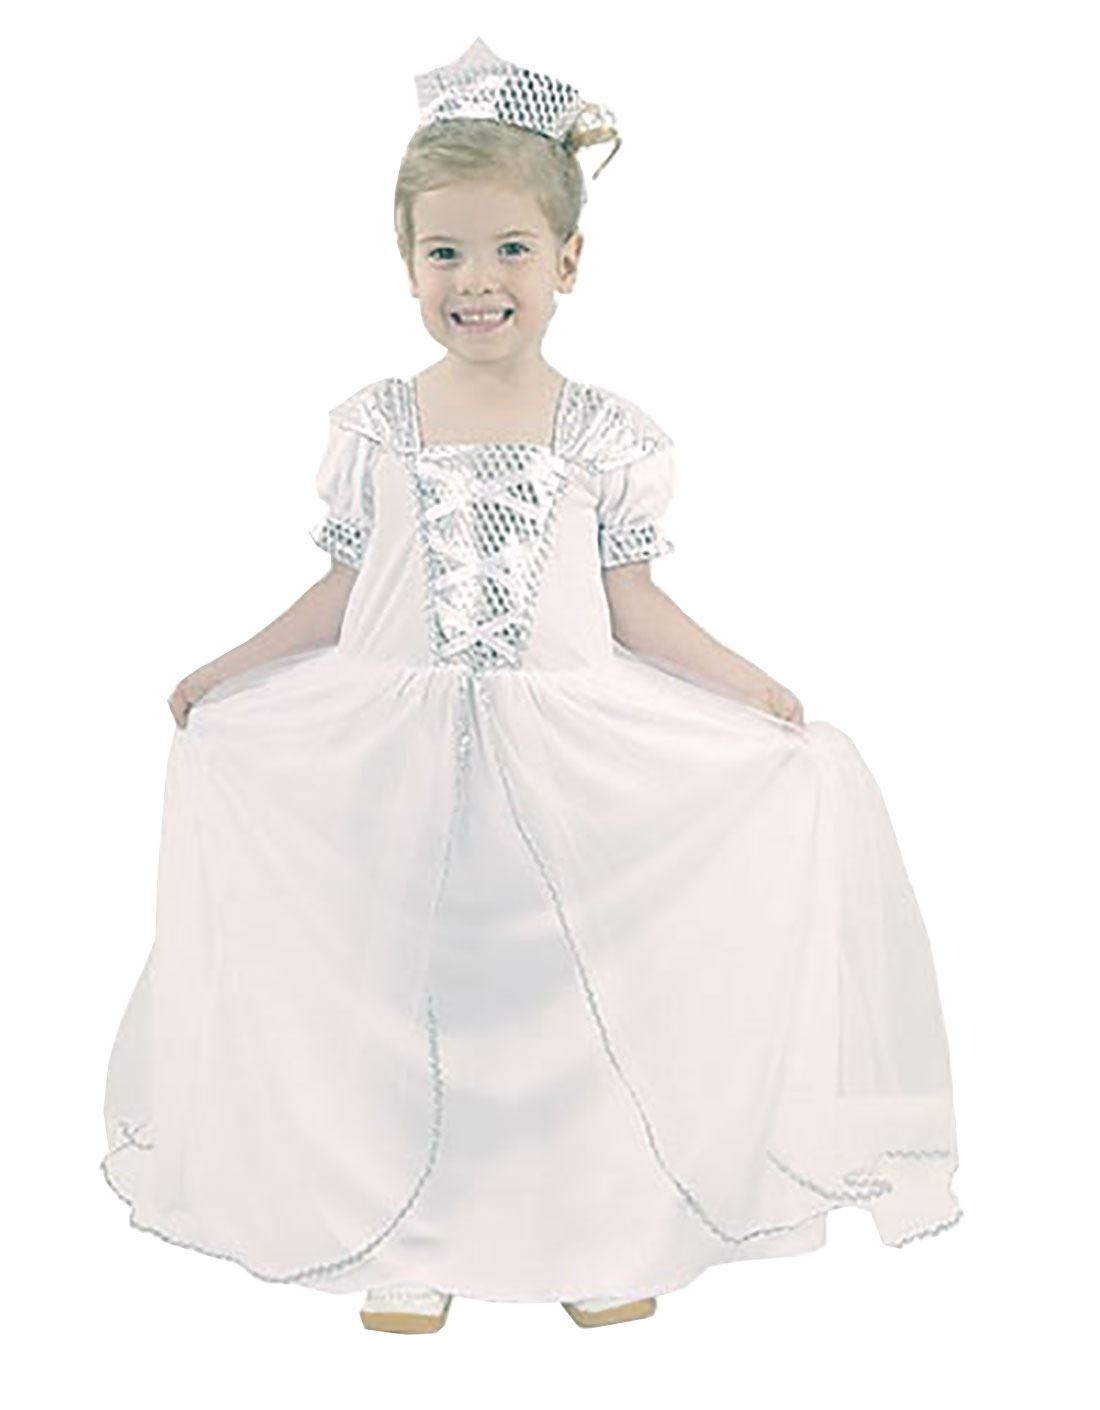 Toddler-Fancy-Princess-Costume-Kids-Fairytale-Novelty-Party-Wear-Dress-Up-Outfit